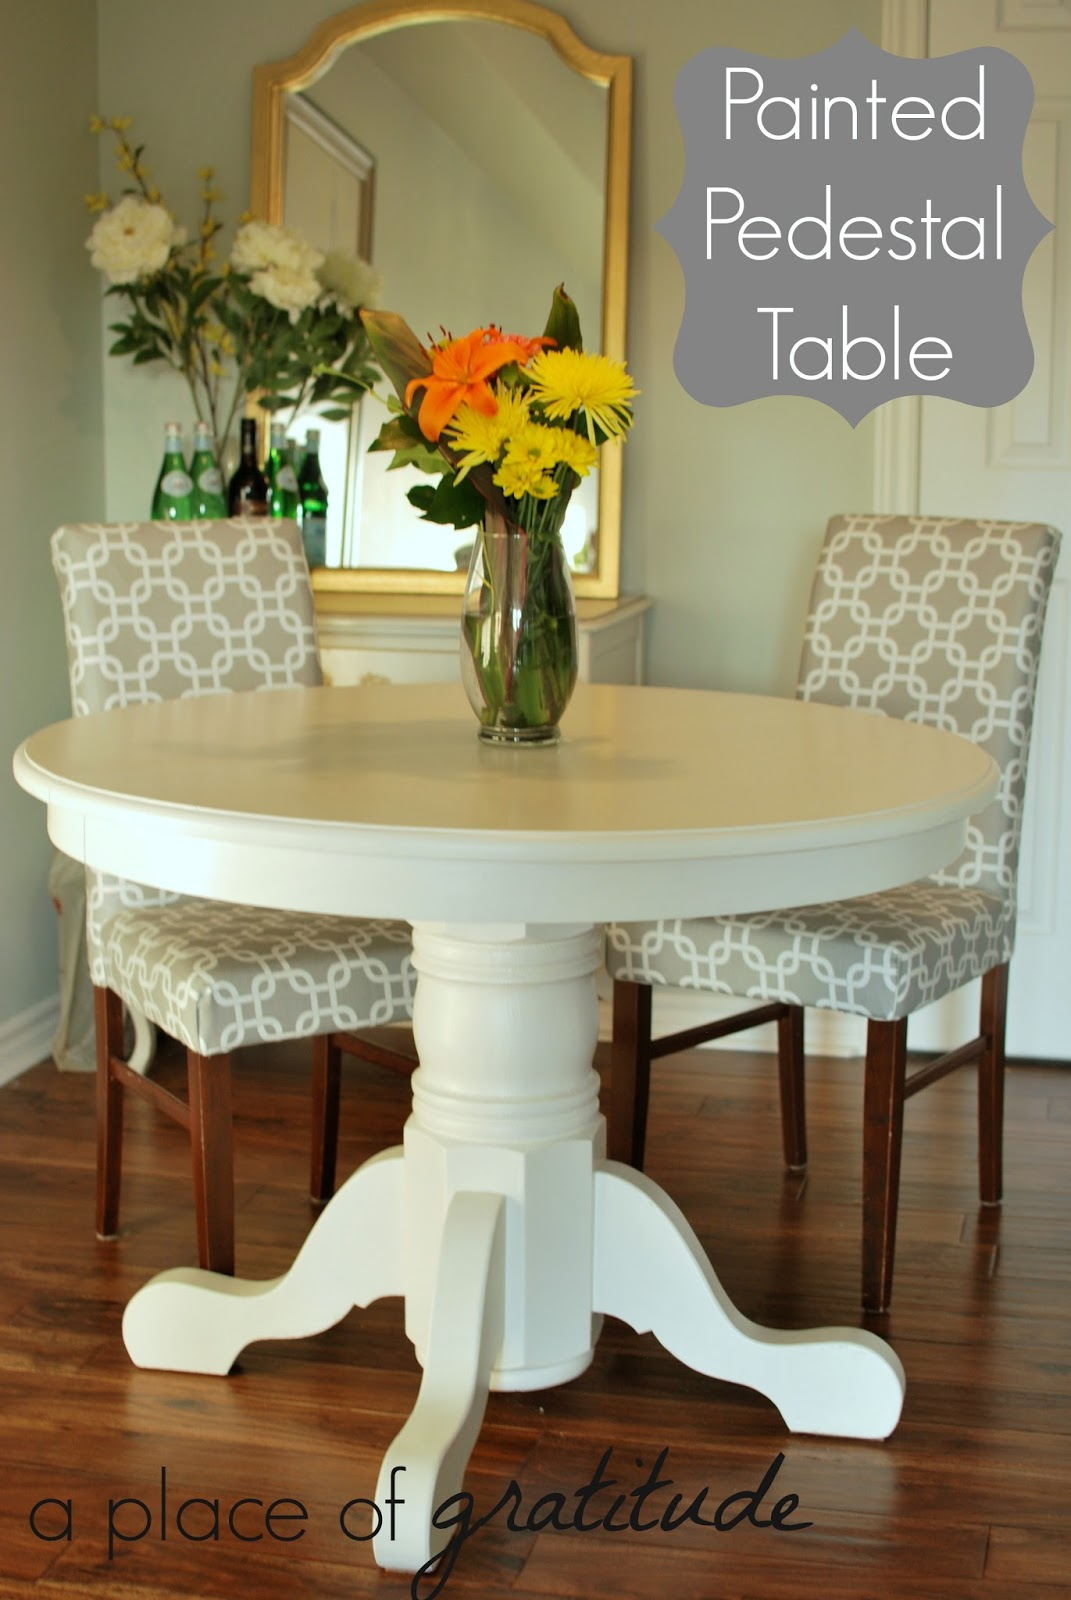 Pedestal Table And Chairs Executive Chair Parts Names A Place Of Gratitude Painted